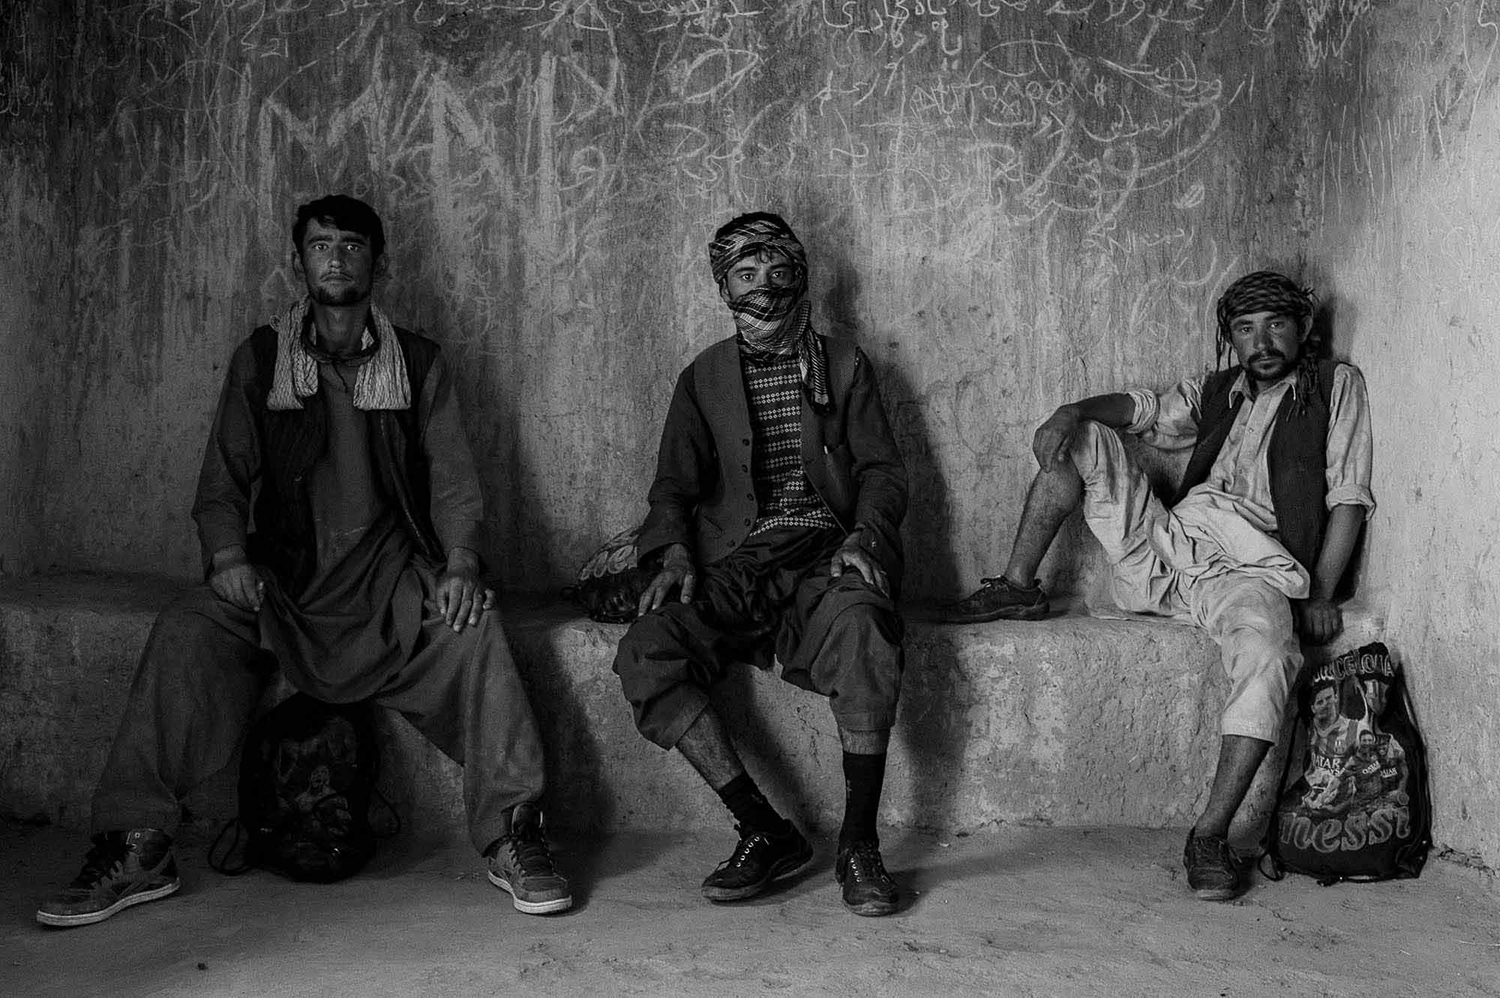 August 2017  Iran, Sistan and Baluchistan state, more than 5000 afghan and Pakistani refugee try to pass the eastern Iranian border to go to a place far from their homeland. Most of them will stay at Iran or will go to turkey and Greece.  Left side Farugh 22 yr Nikmuhammad 21 yr and Mohammad 25 yr in one the dormitories on their trip road. They are waiting order from their lord to move. They will almost meet 7 lords on their way and each of them is responsible for something in each city till they arrive the southern or western north border of Iran to exit.